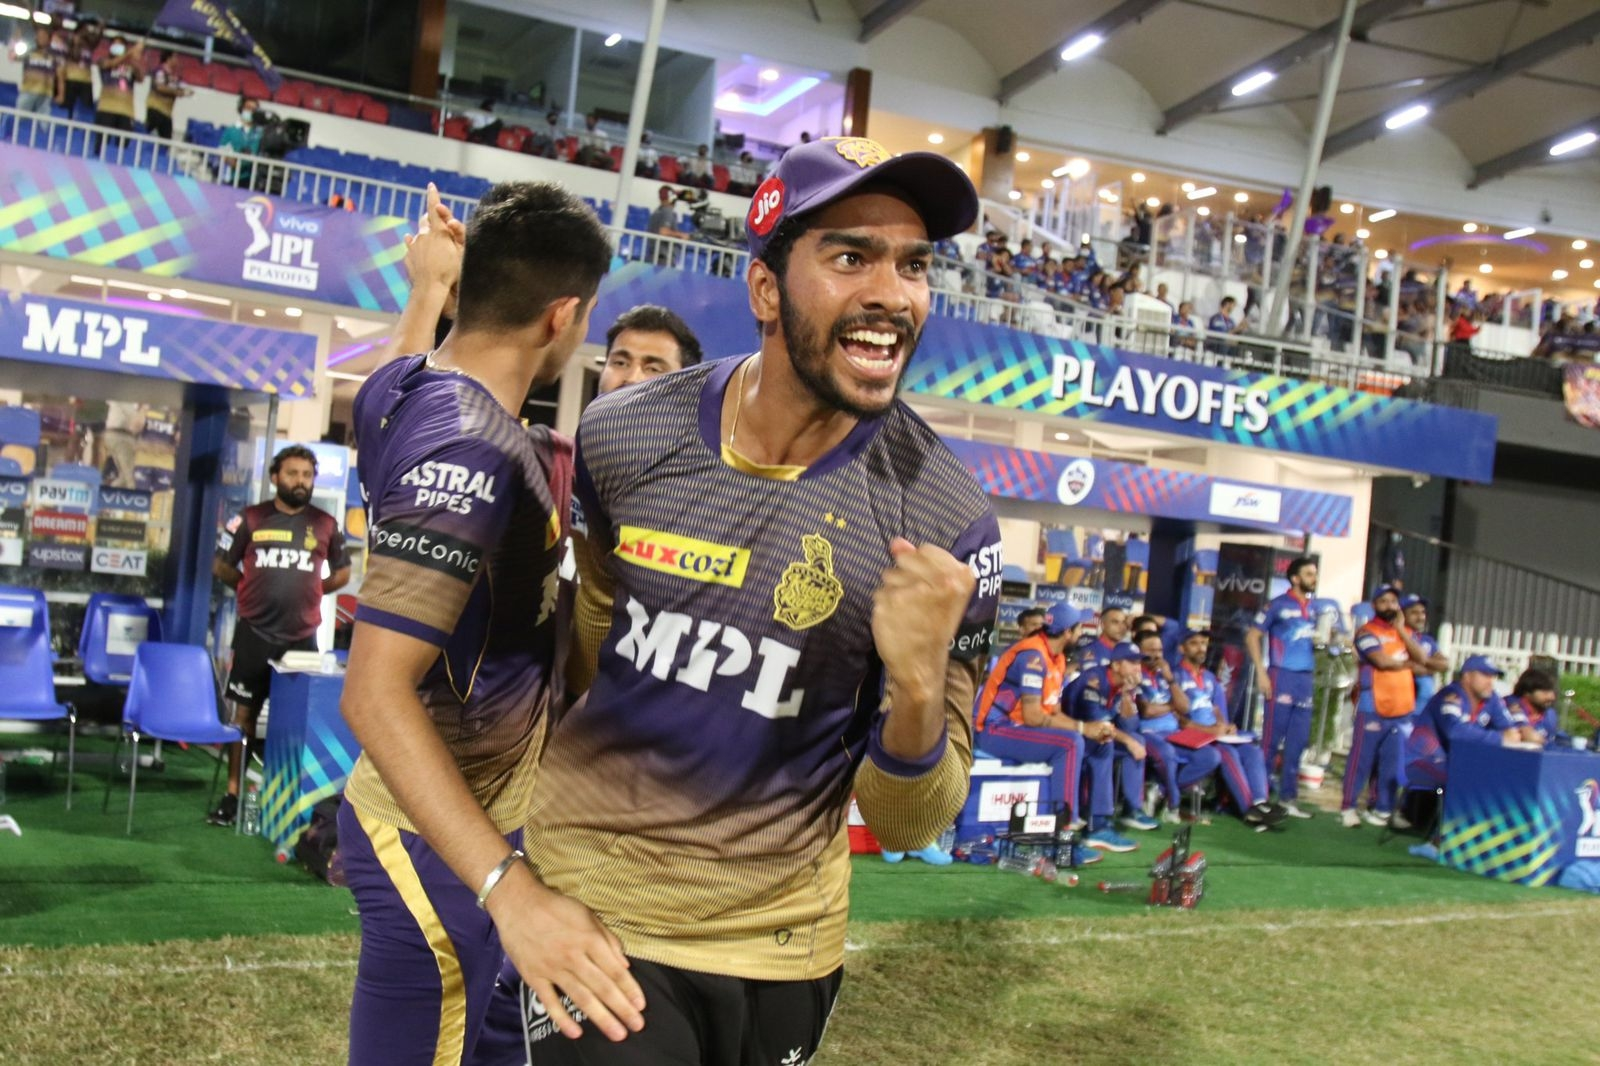 IPL 2021 Qualifier 2: KKR survive late scare to beat DC by 3 wickets, to face CSK in final